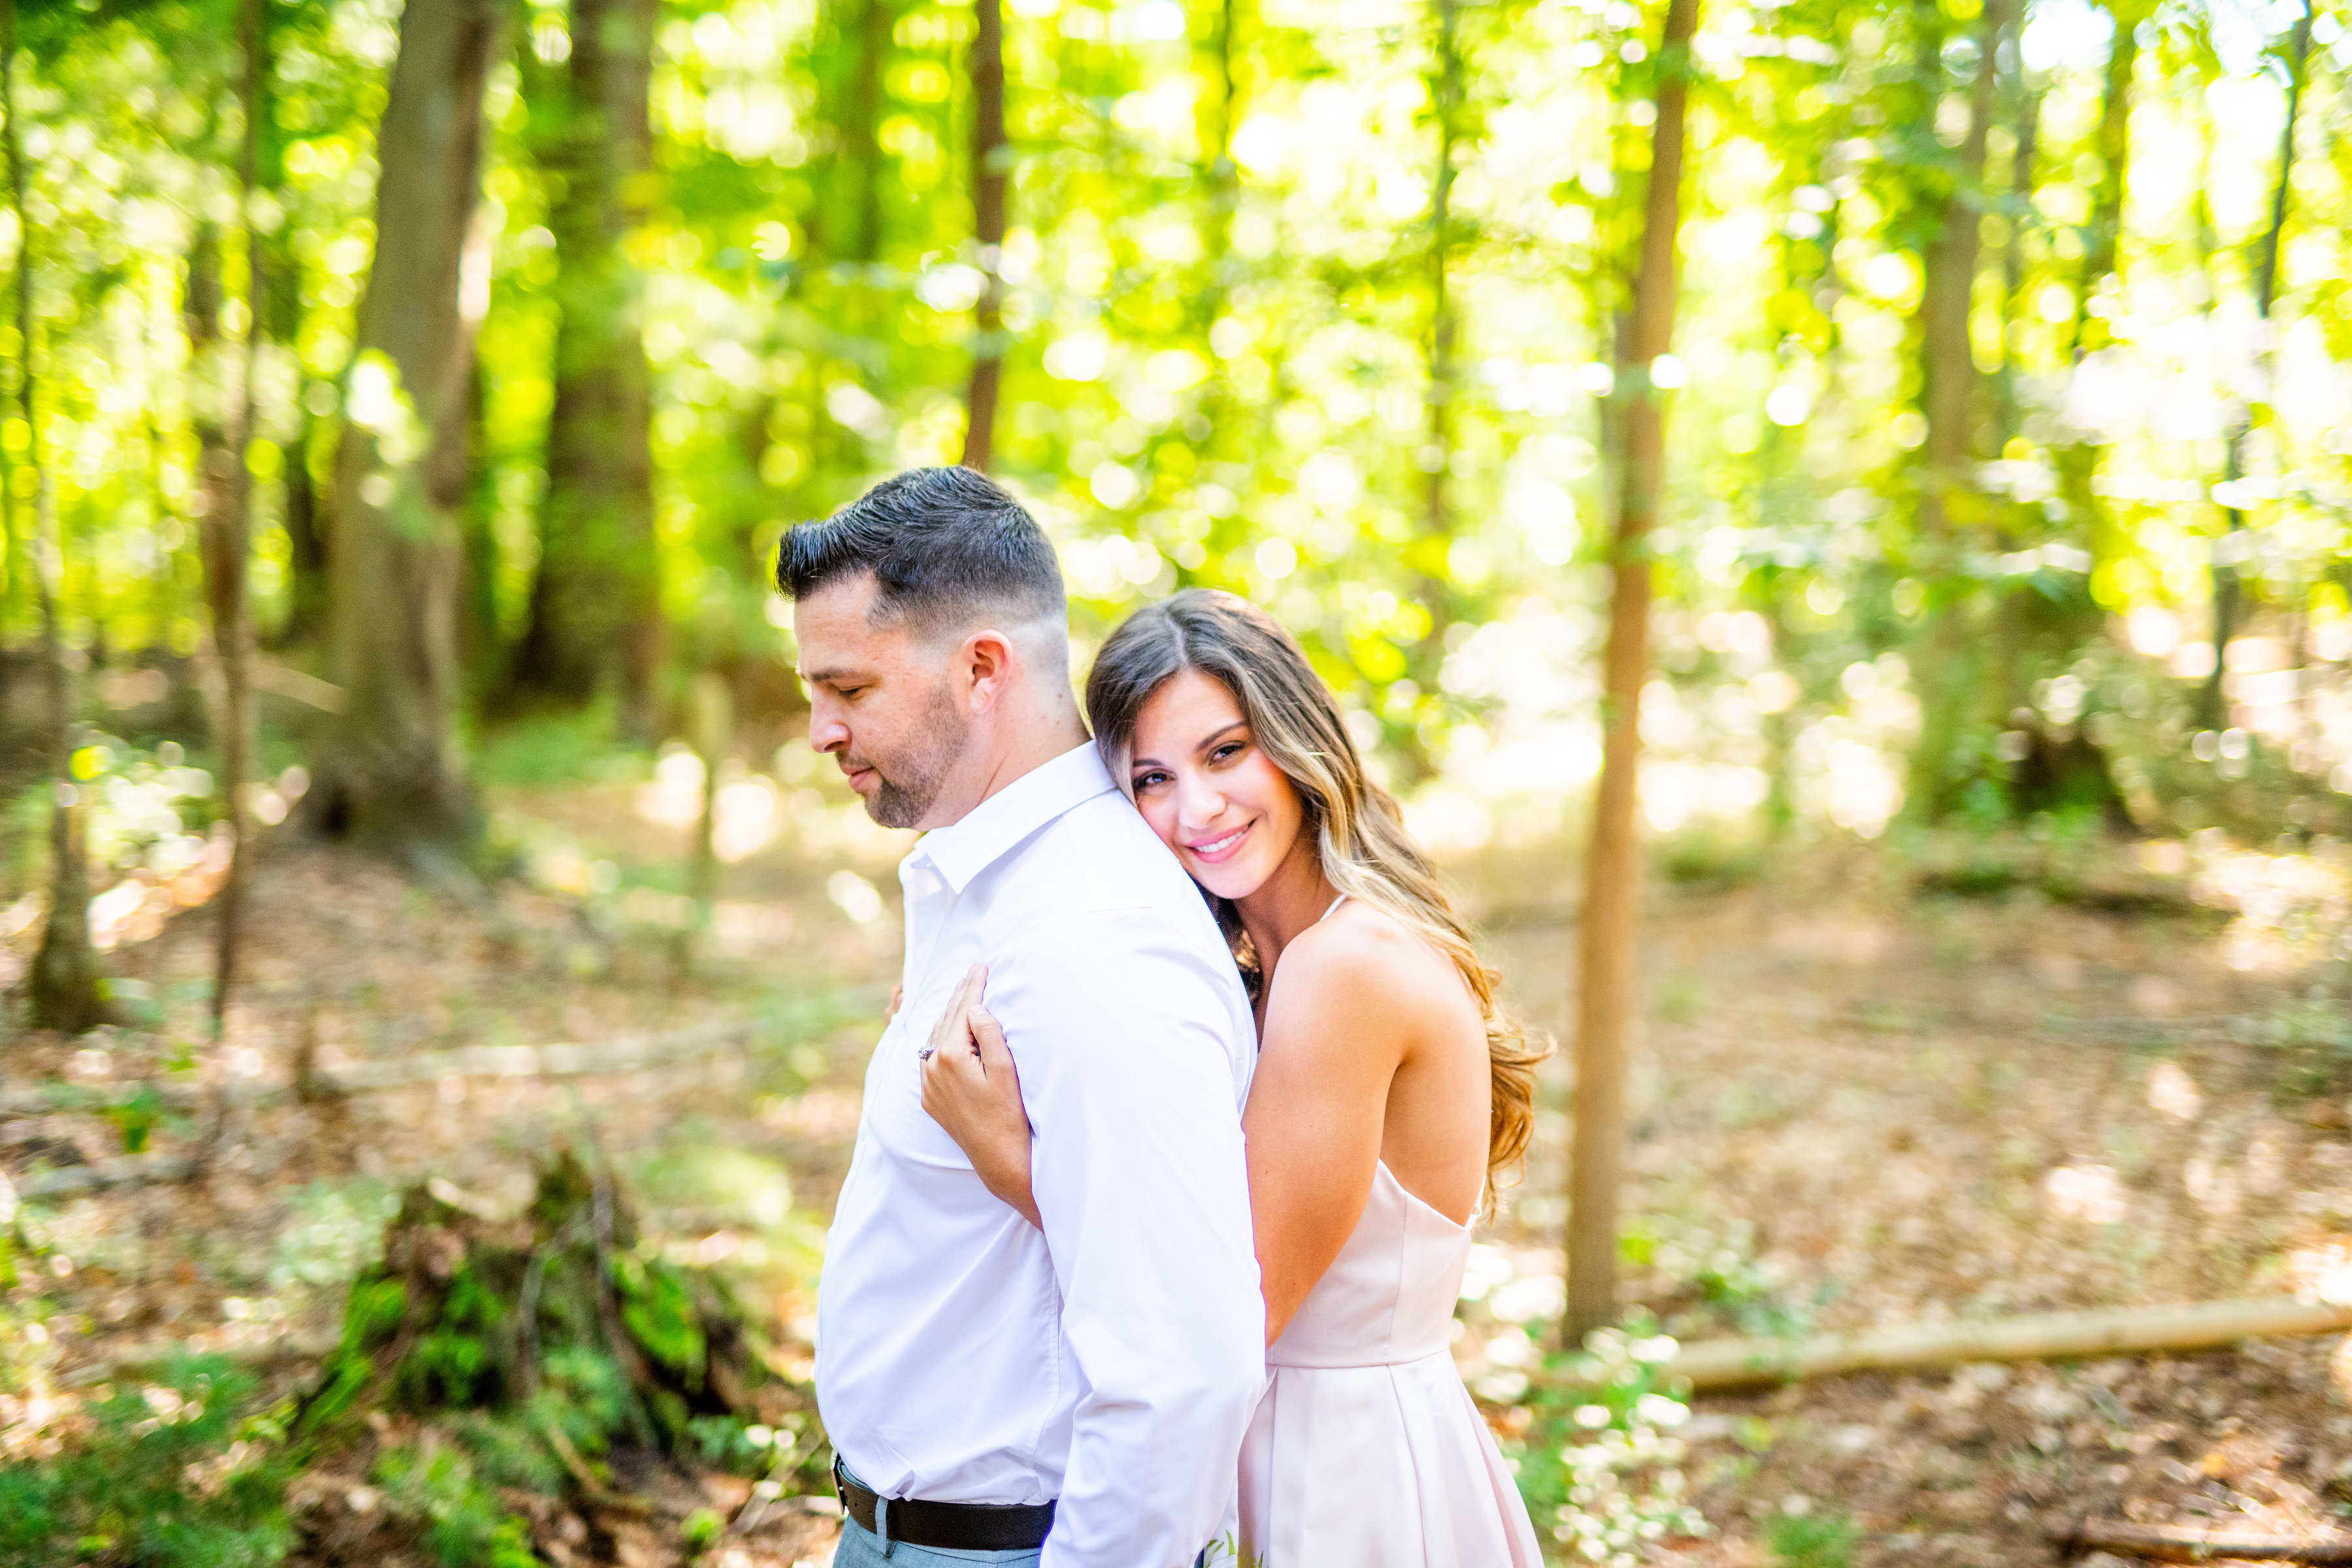 Prosser Pines Engagement Shoot | Long Island Wedding Photographer | Hamptons Wedding Photographer15